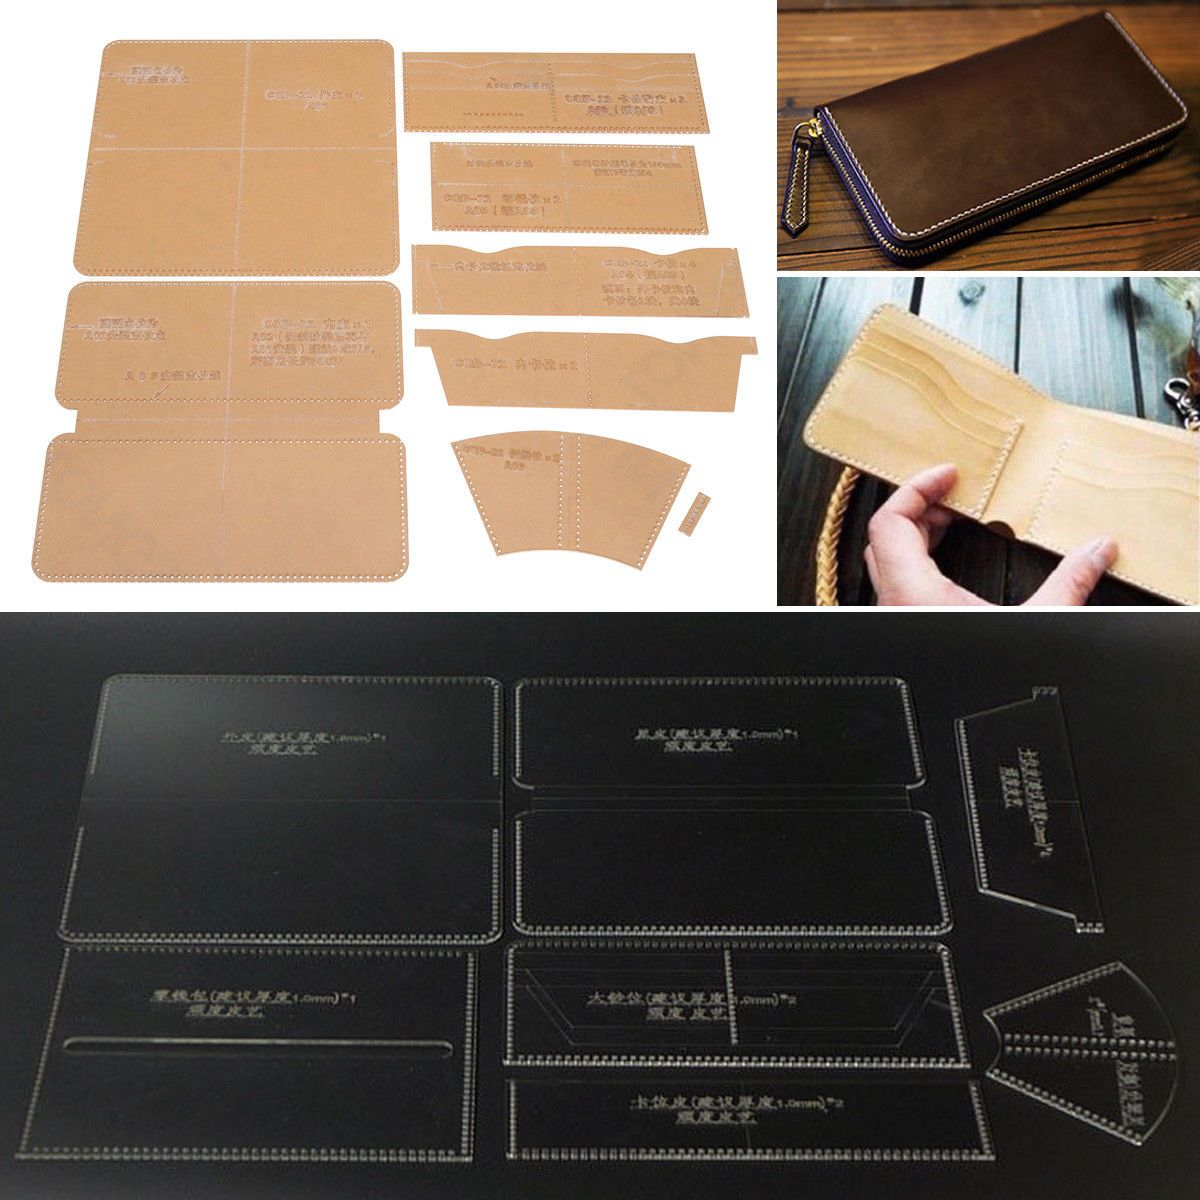 1X DIY Leather Craft Acrylic Wallet Purse Pattern Template Stencil Making Bag